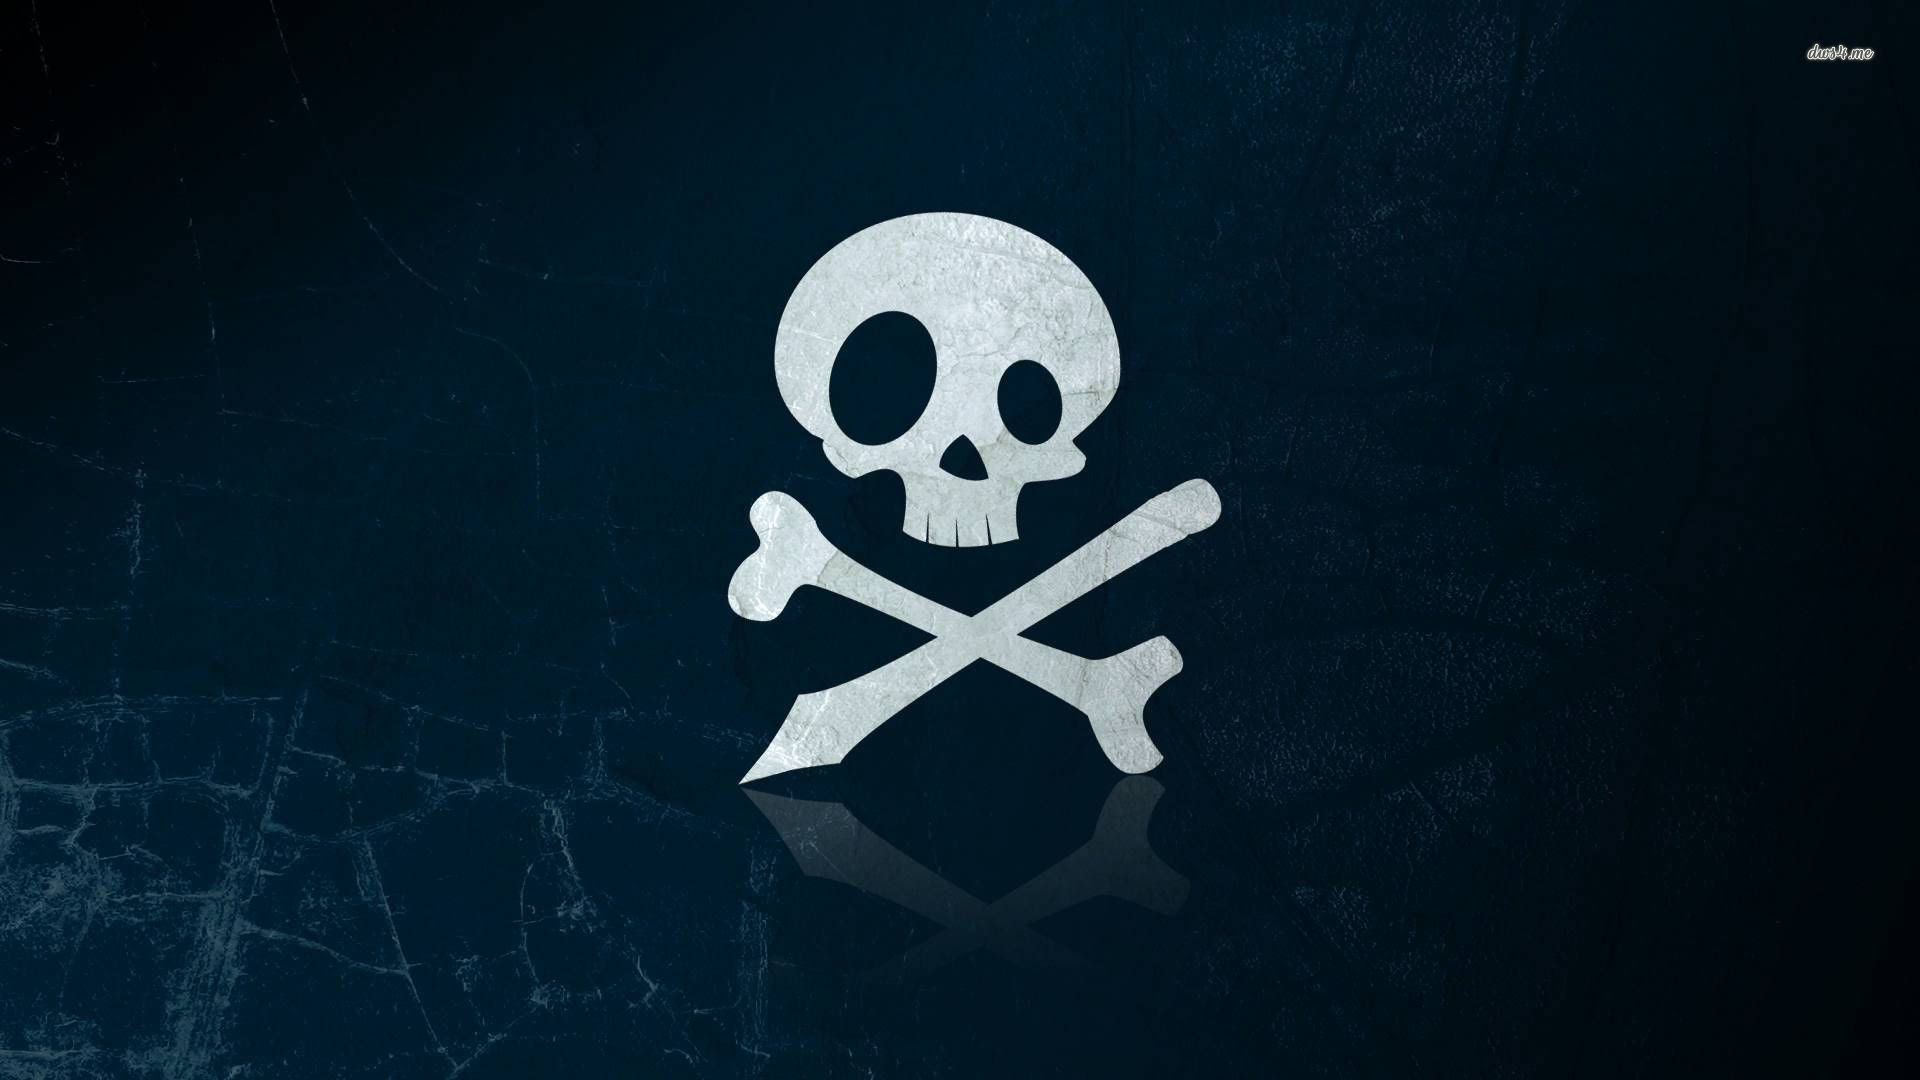 Skull And Crossbones Wallpapers 55 Images